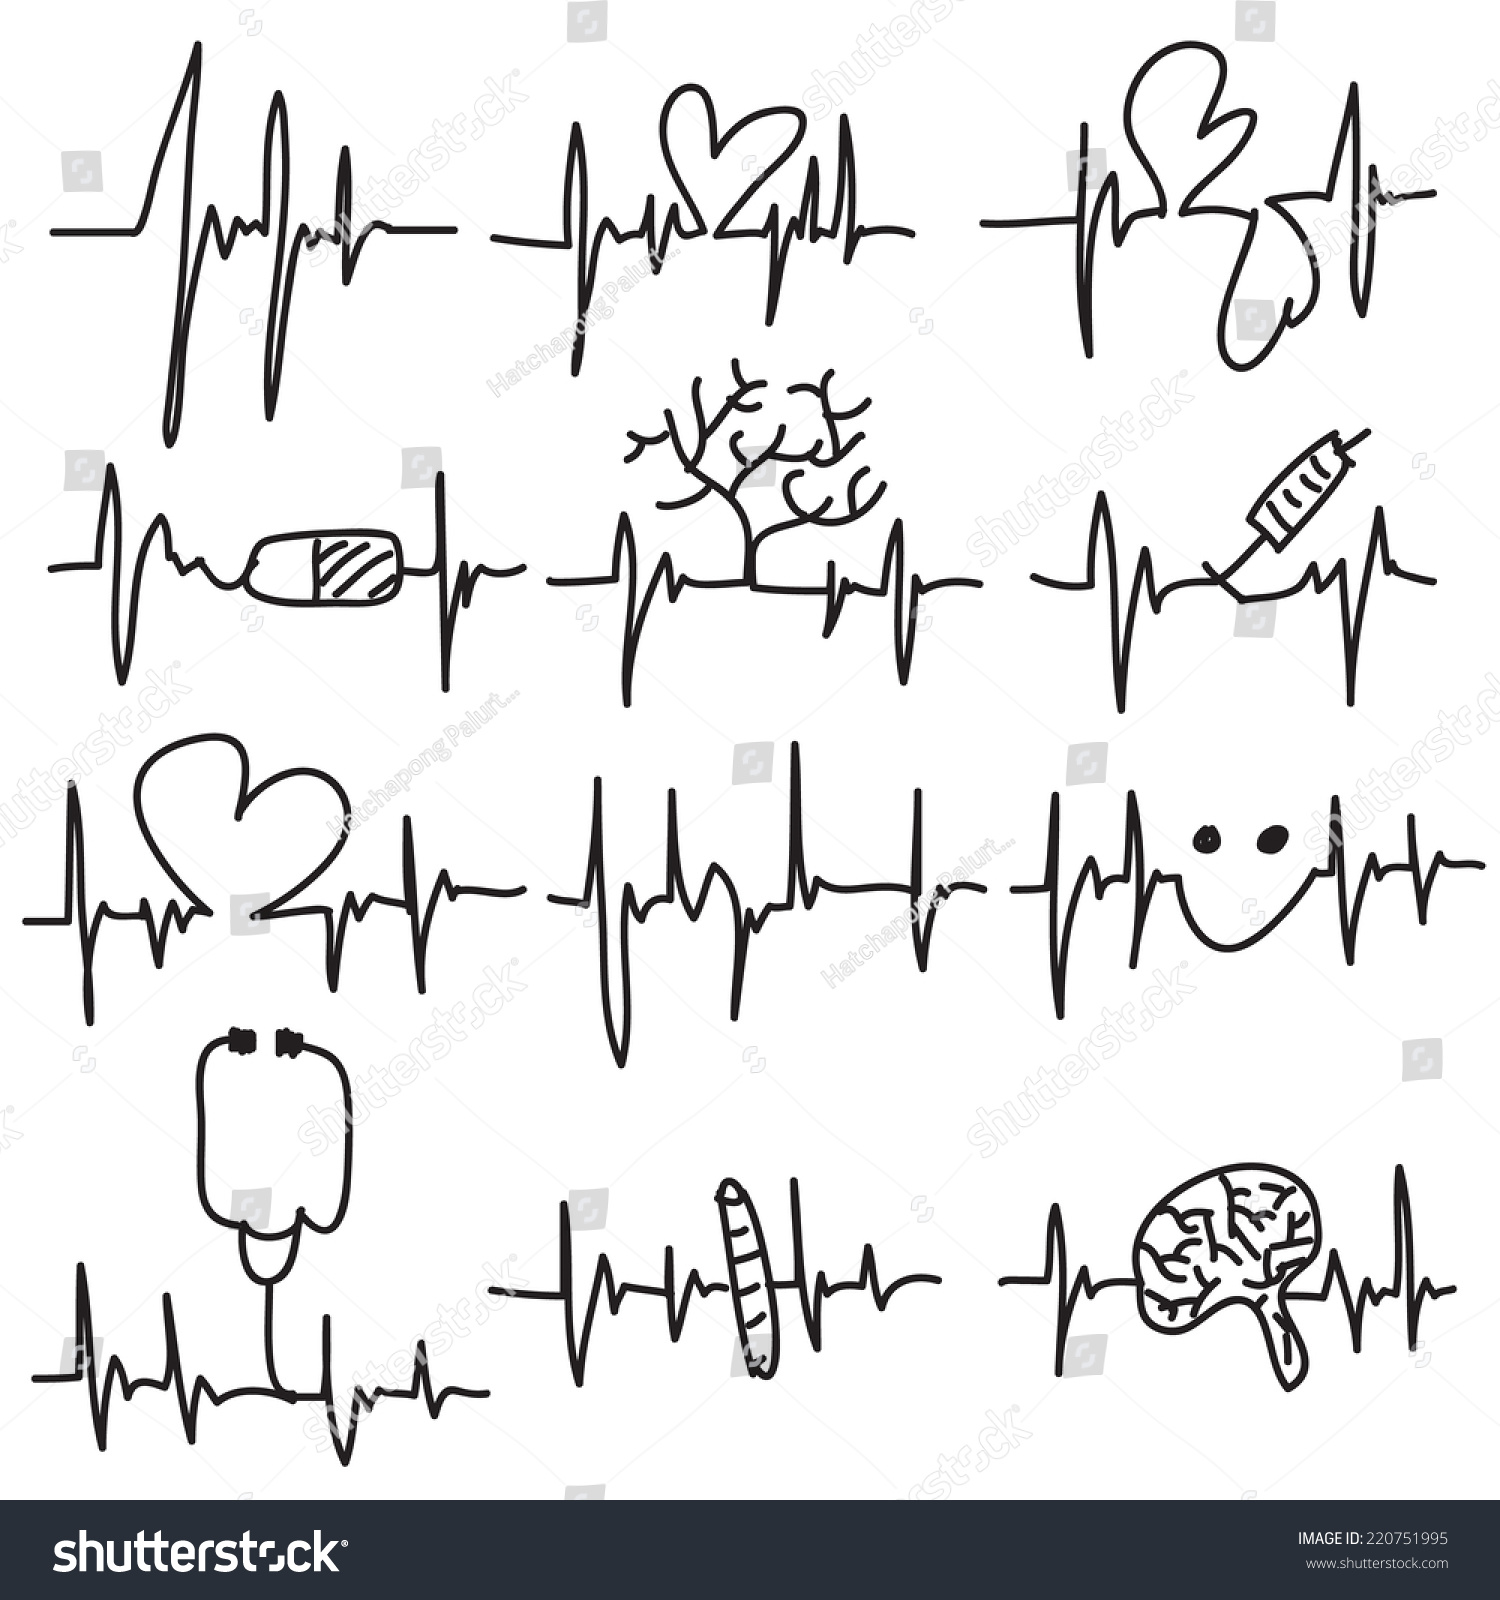 Heartbeat Line Art : Vector illustration drawn heart beat cardiogram stock